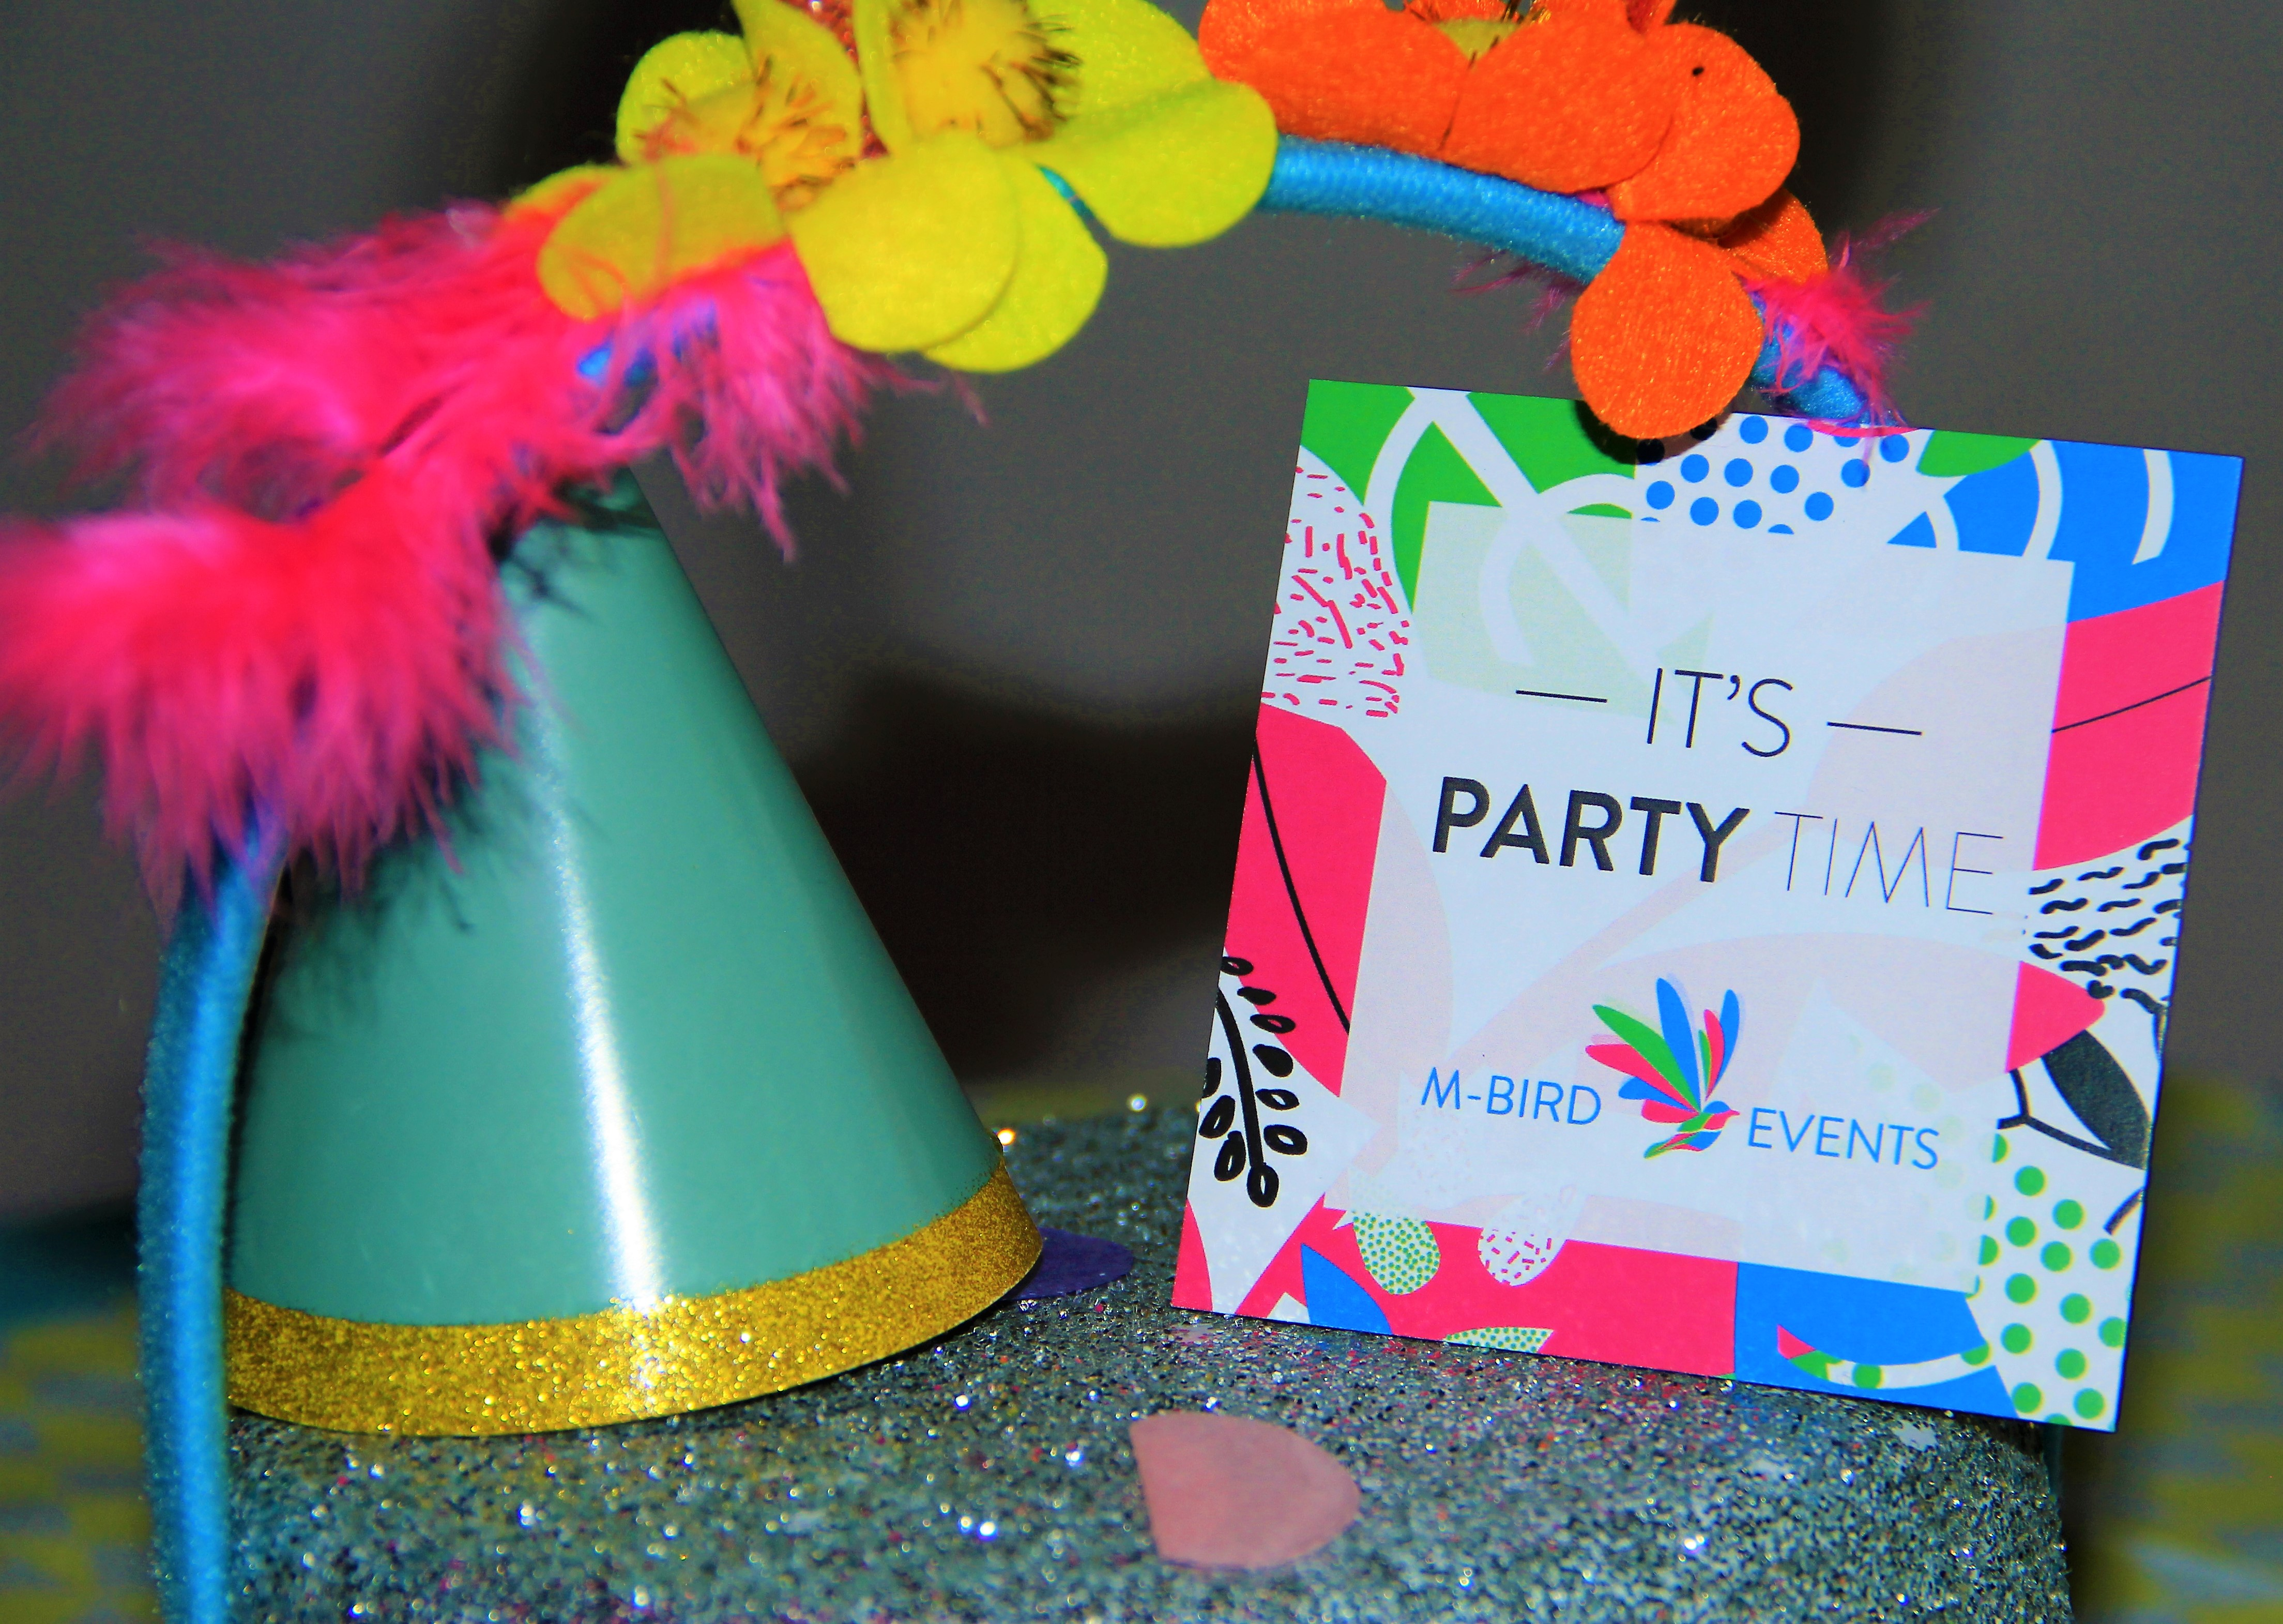 M-Bird Events – Flinke portie confetti